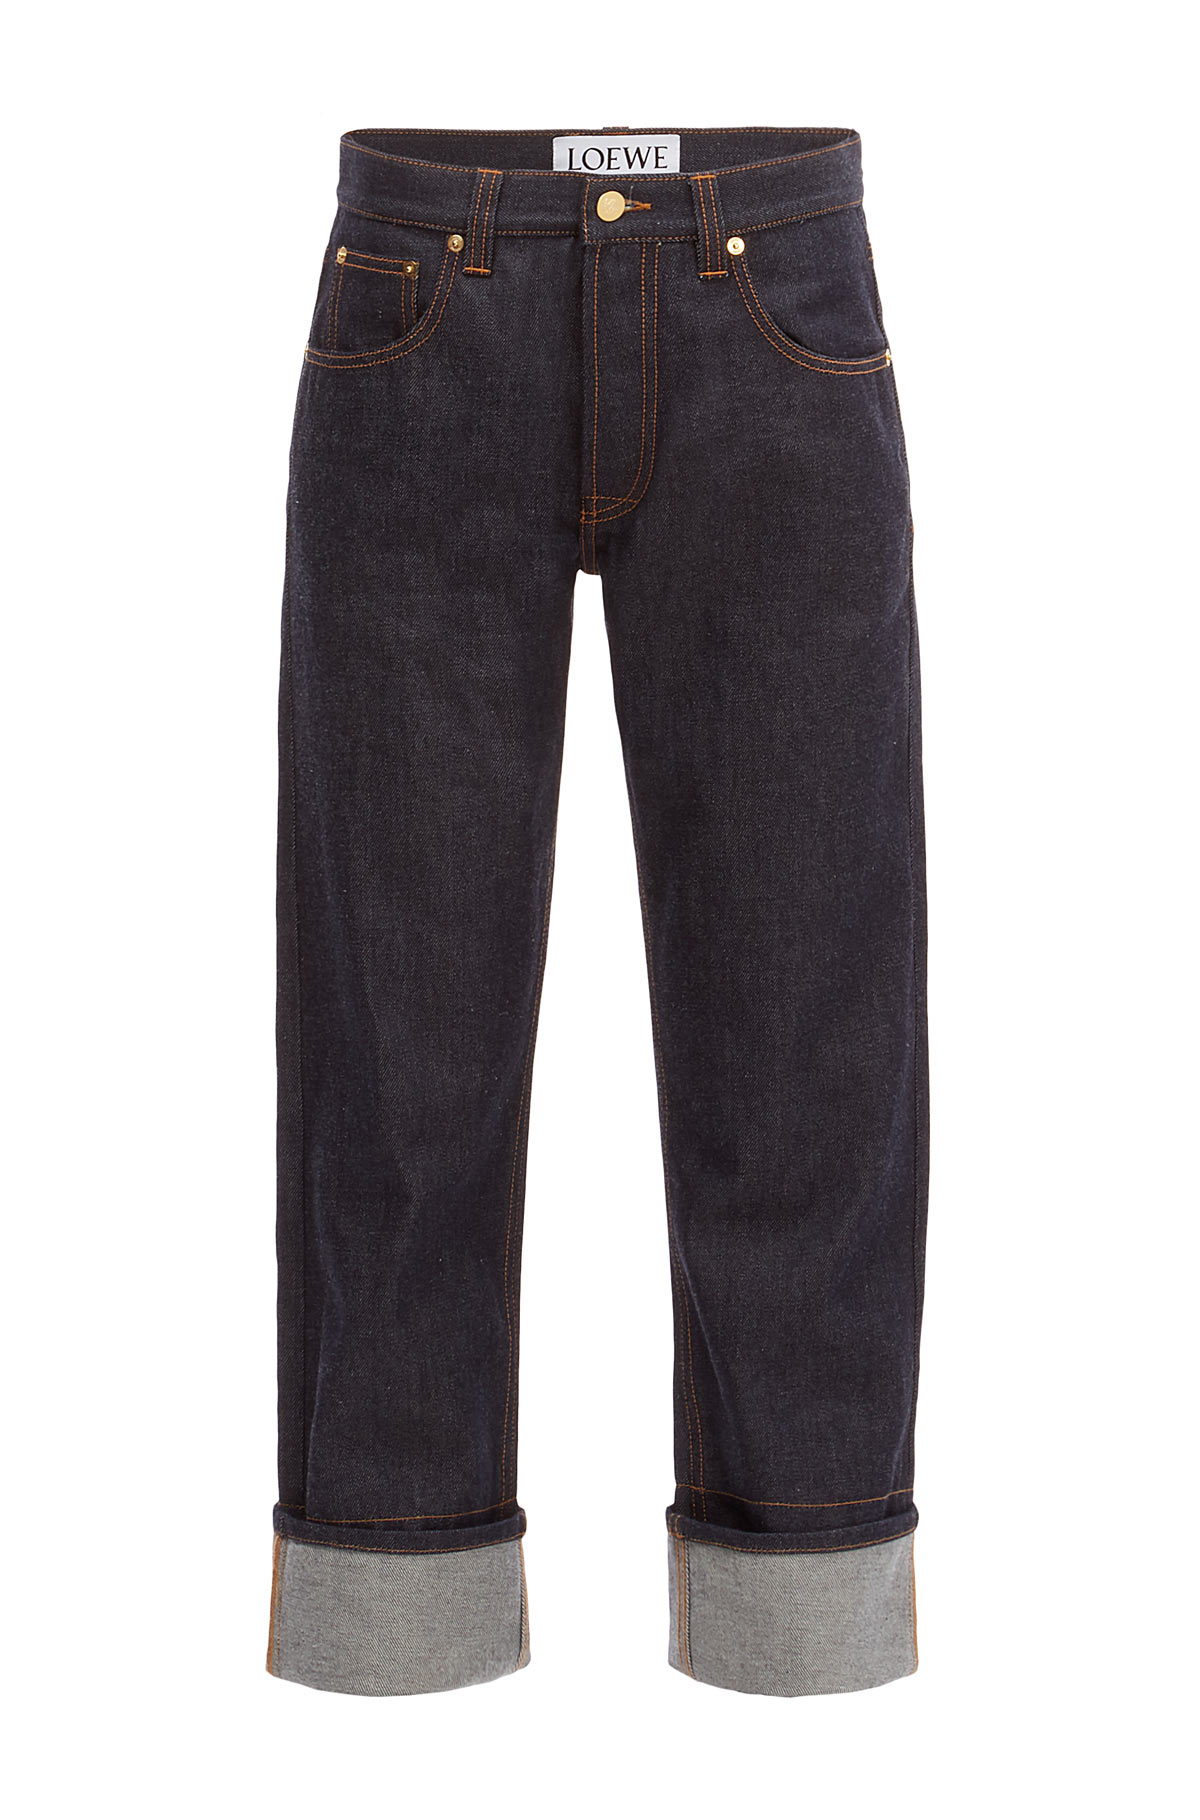 LOEWE 5 Pocket Jeans Dark Denim Blue front